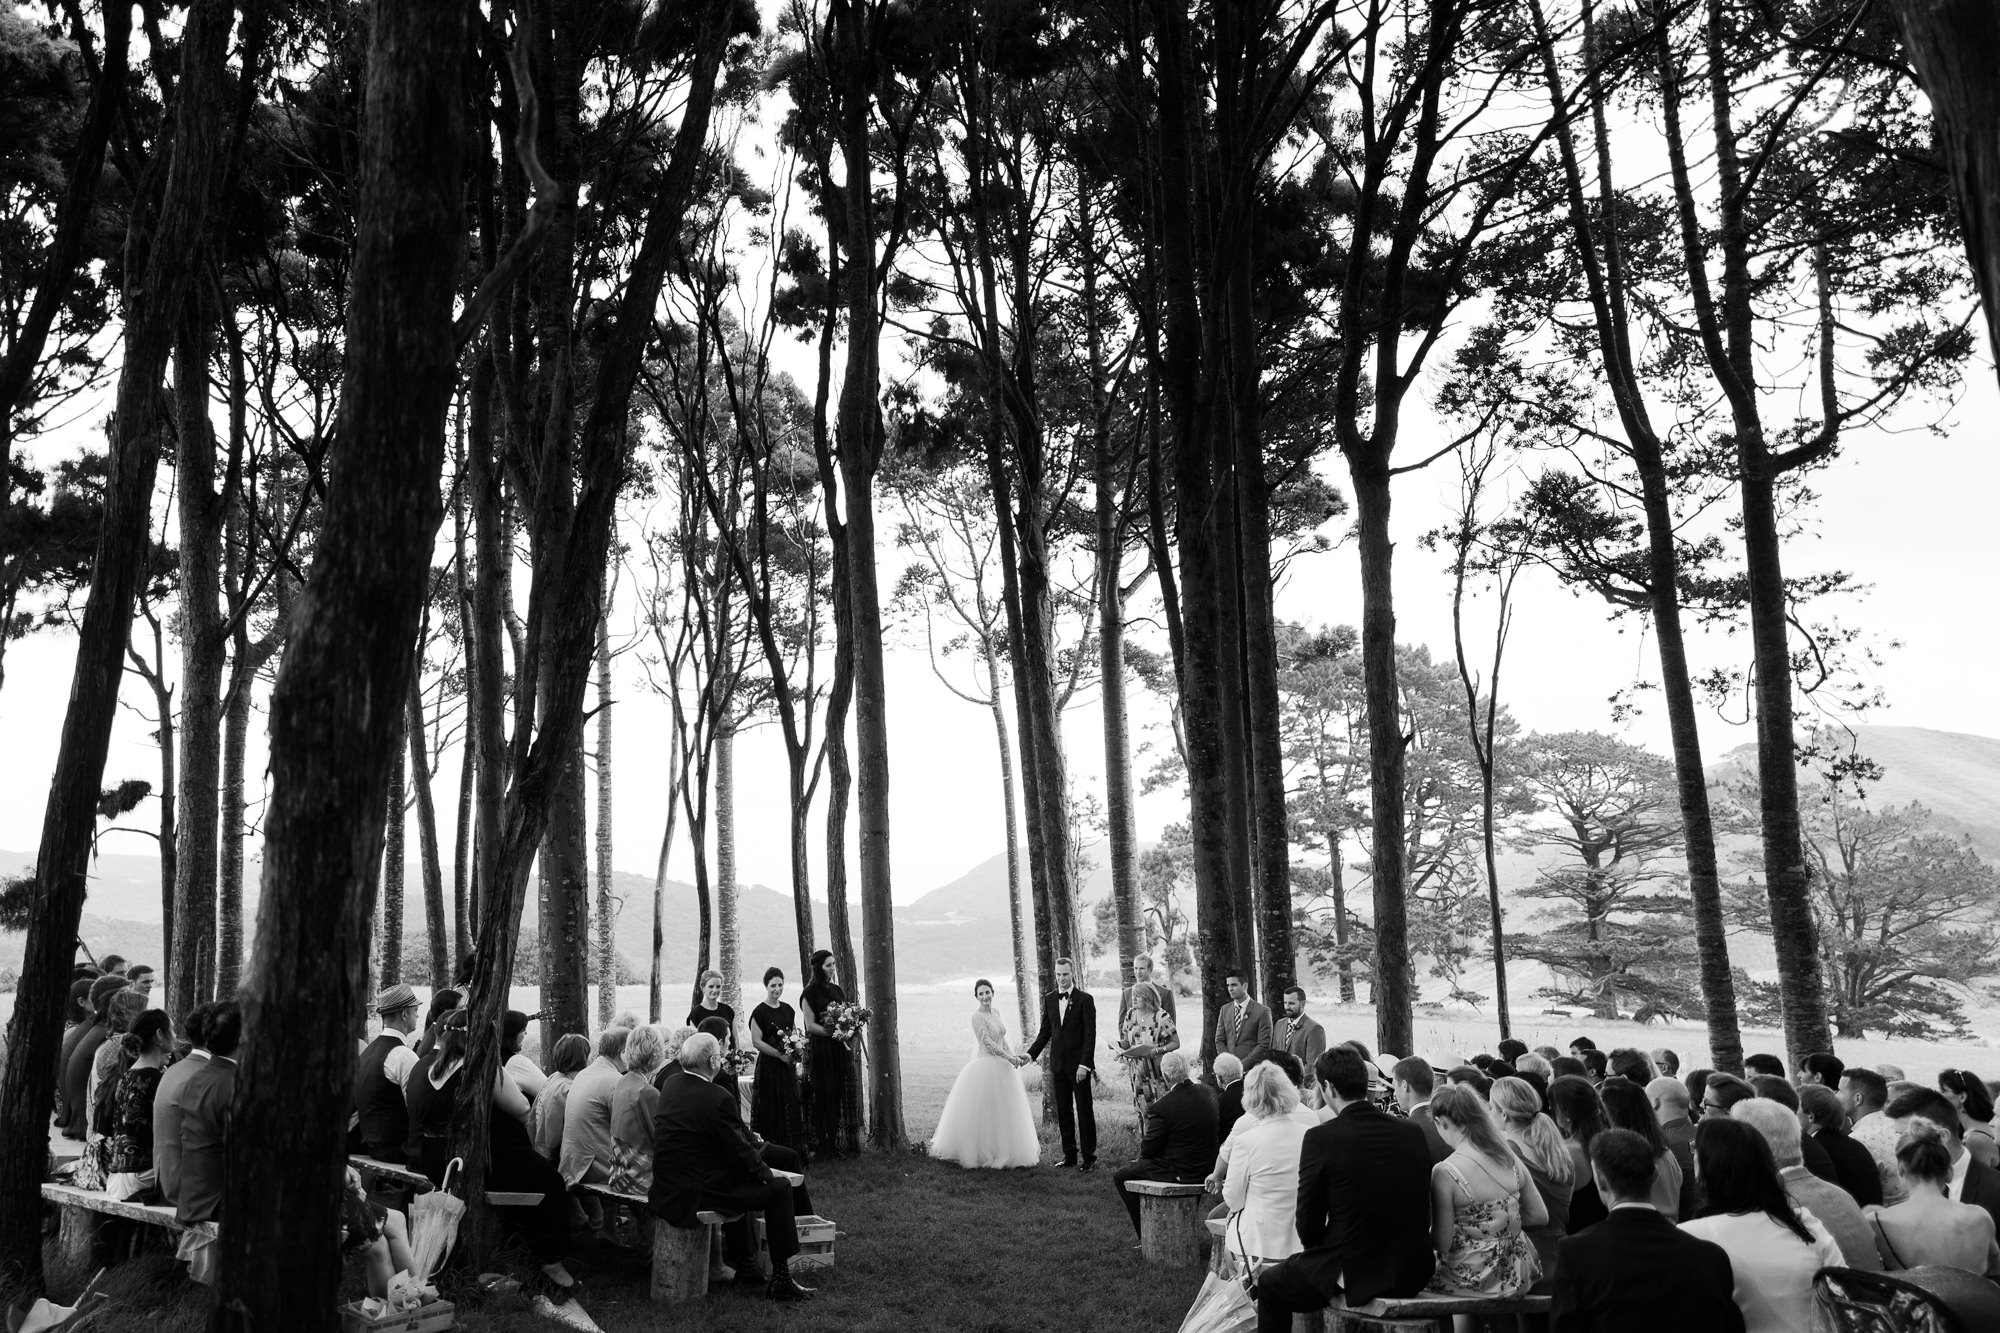 Ceremony in forest photo by Nordica Photography